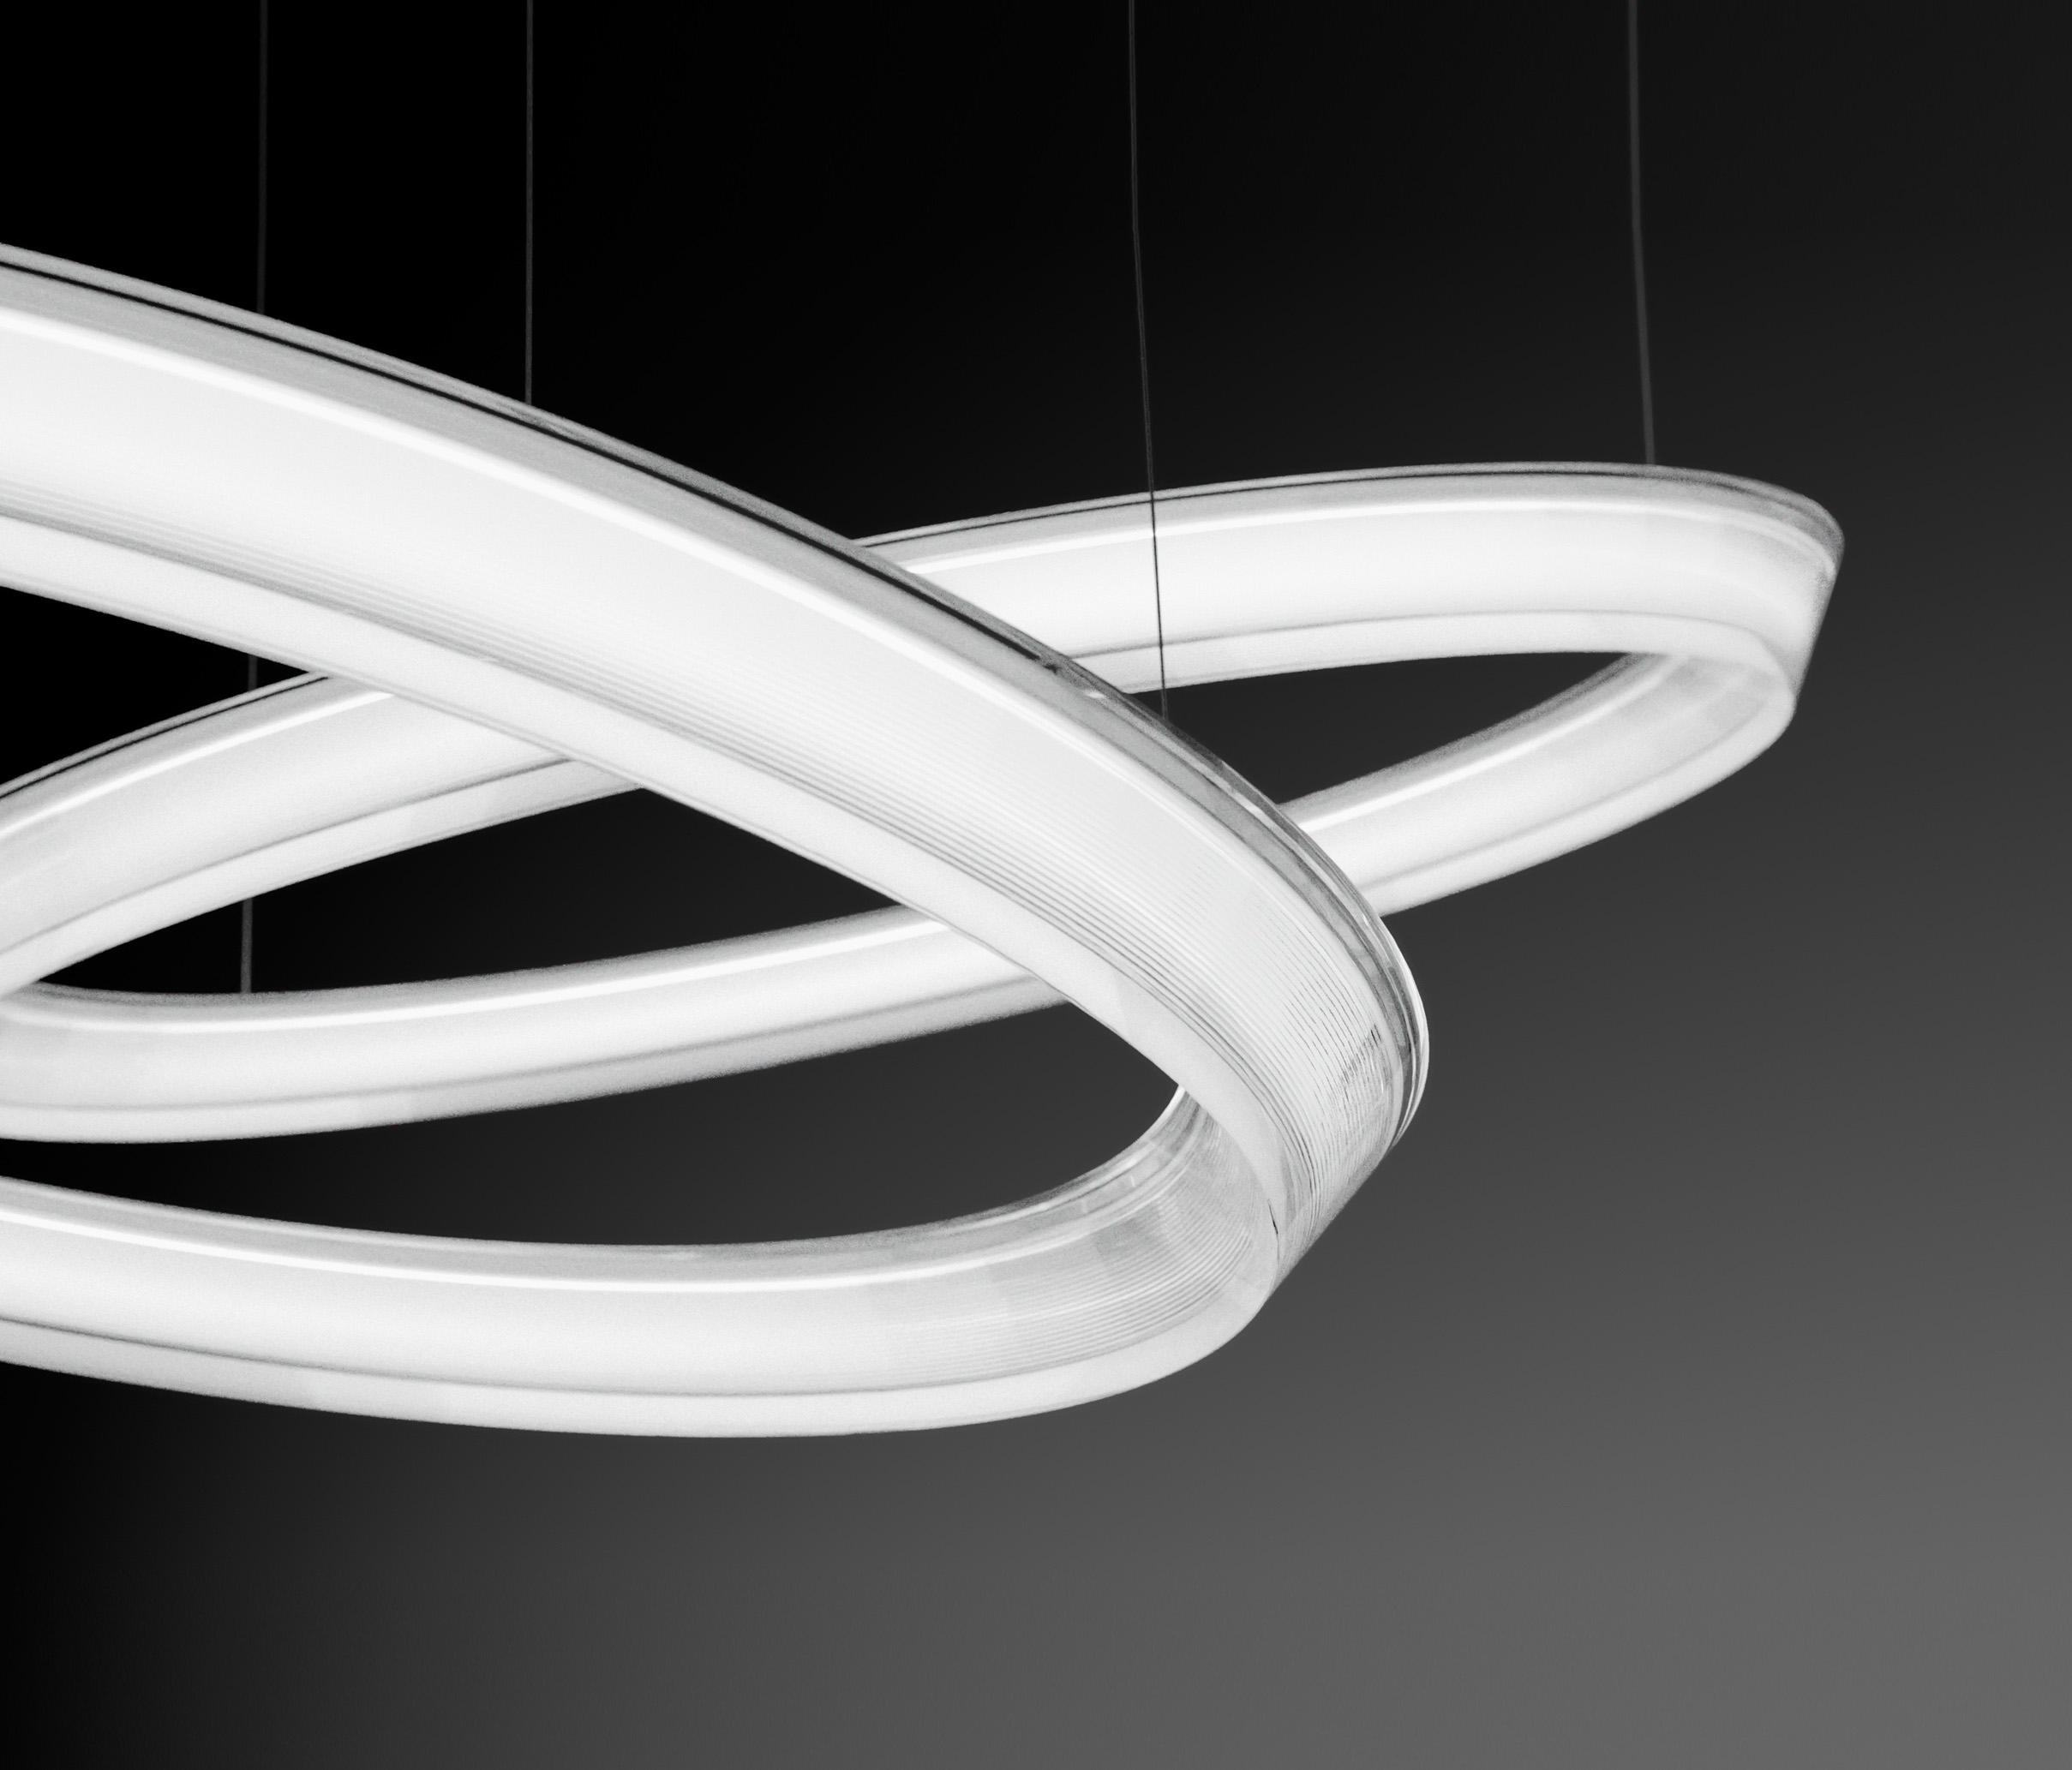 Halo hanging lamp double general lighting from vibia architonic halo hanging lamp double by vibia general lighting aloadofball Image collections